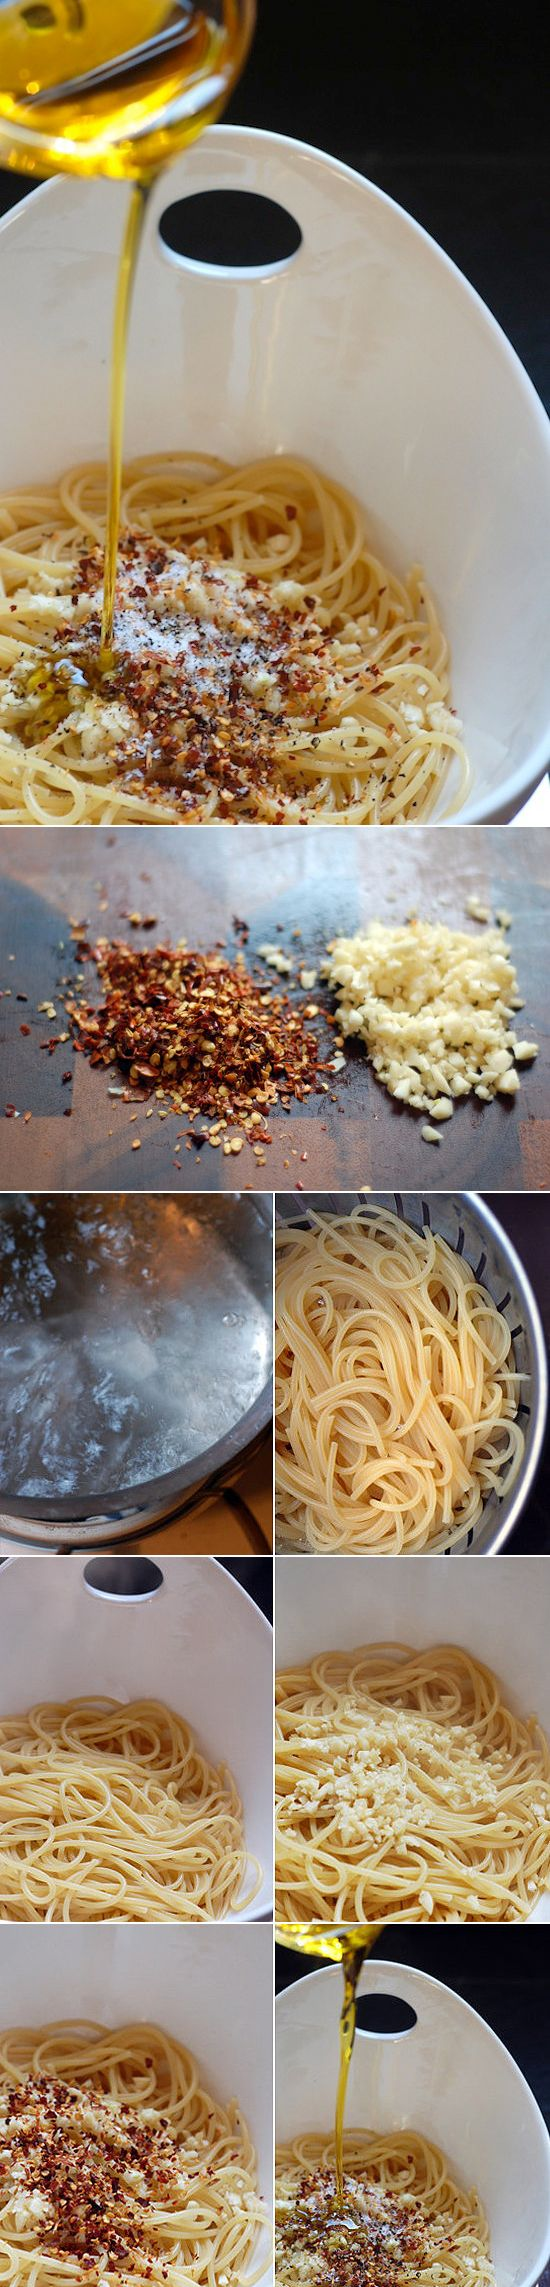 Spaghetti Aglio, Olio, e Peperoncino — a fast and easy dinner from pantry items